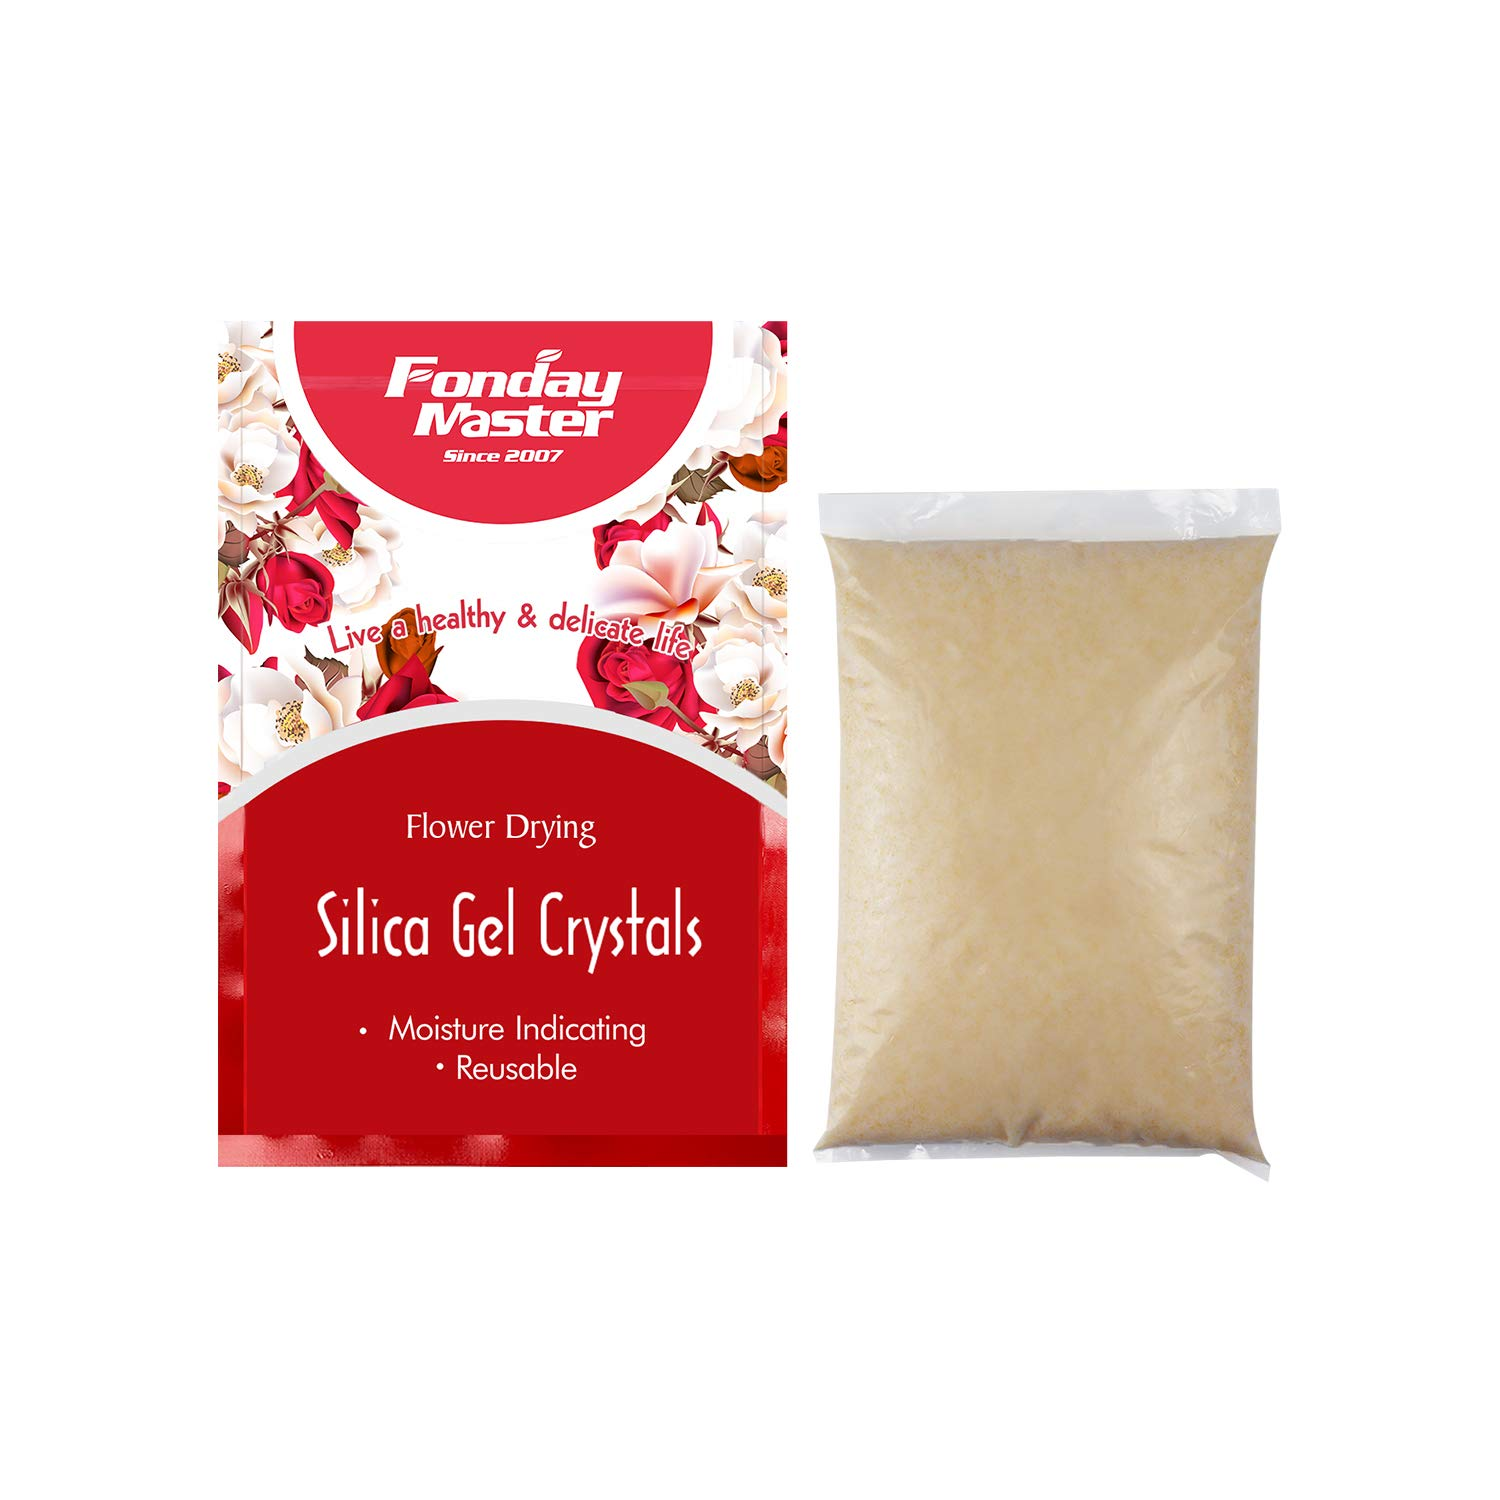 Fonday Silica Gel Flower Drying Crystals, Fine Crystals, Moisture Indicating, Reusable (5 LBS)